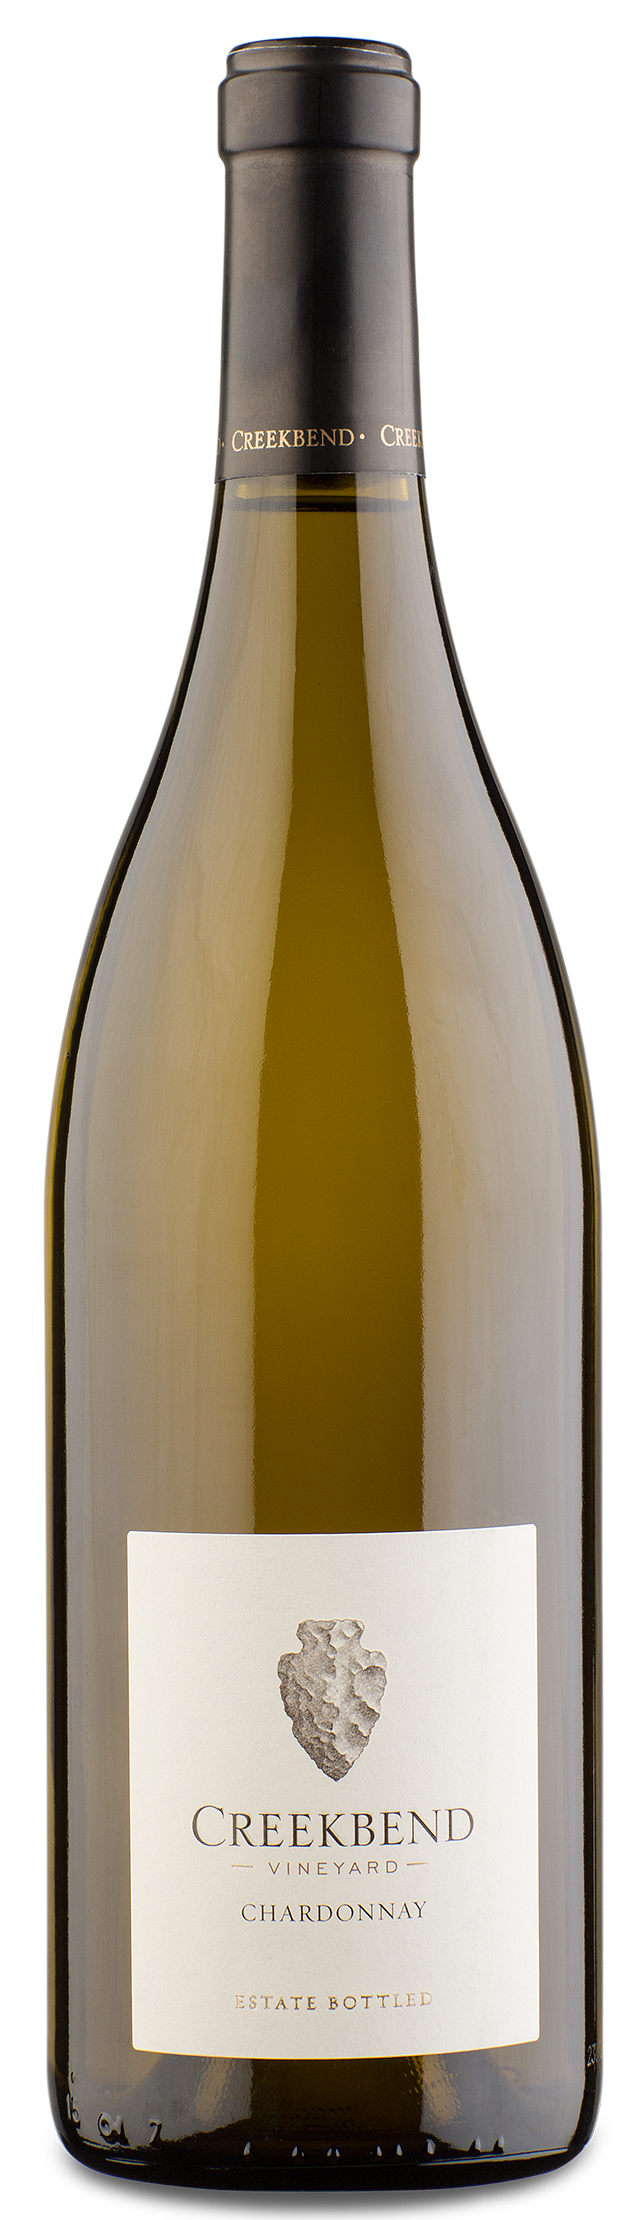 Indiana-Grown Creekbend Chardonnay